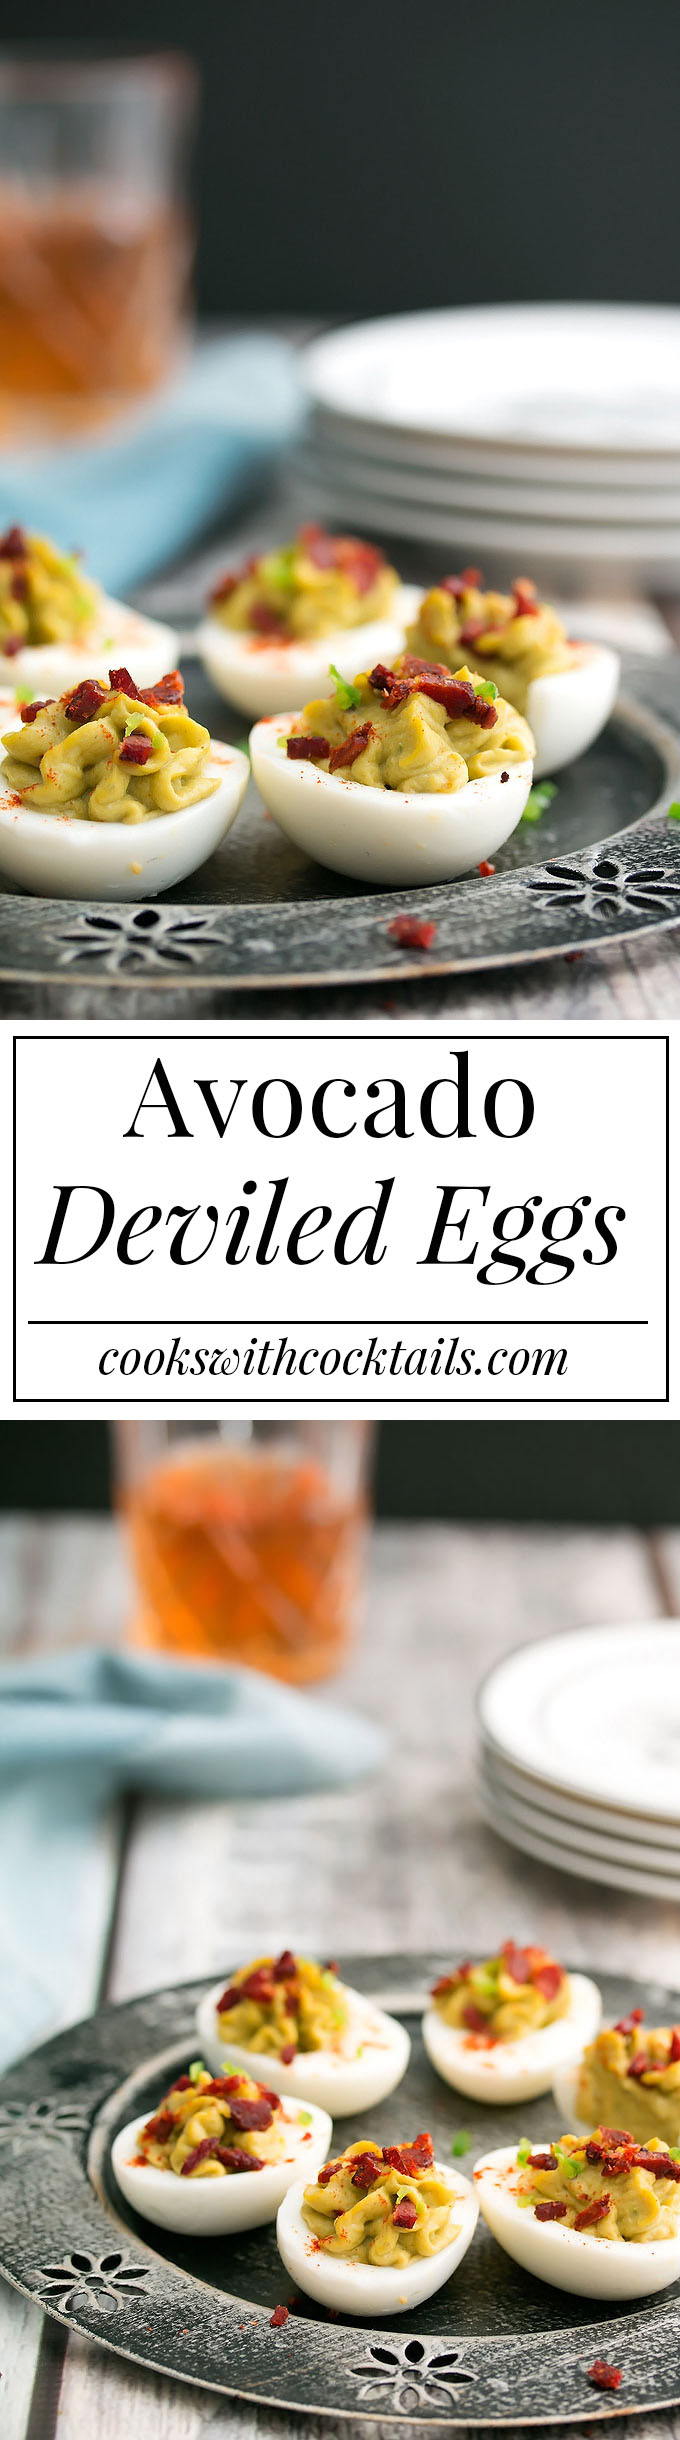 Avocado, Jalapeno & Bacon Deviled Eggs & the Hard Boiled Egg Trick